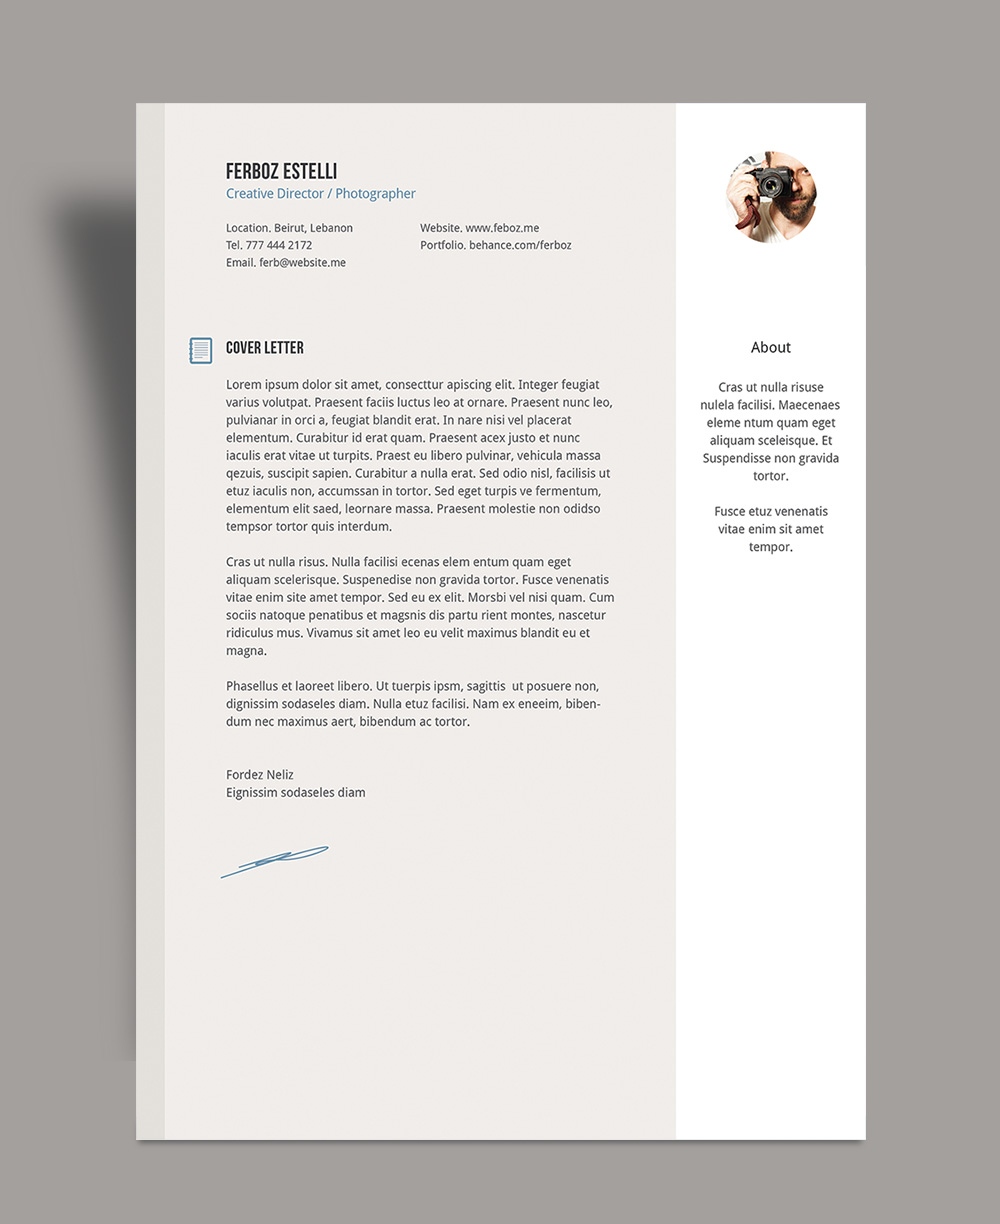 Cover Letter Design Portfolio - Graphic Design Cover Letter: Sample ...